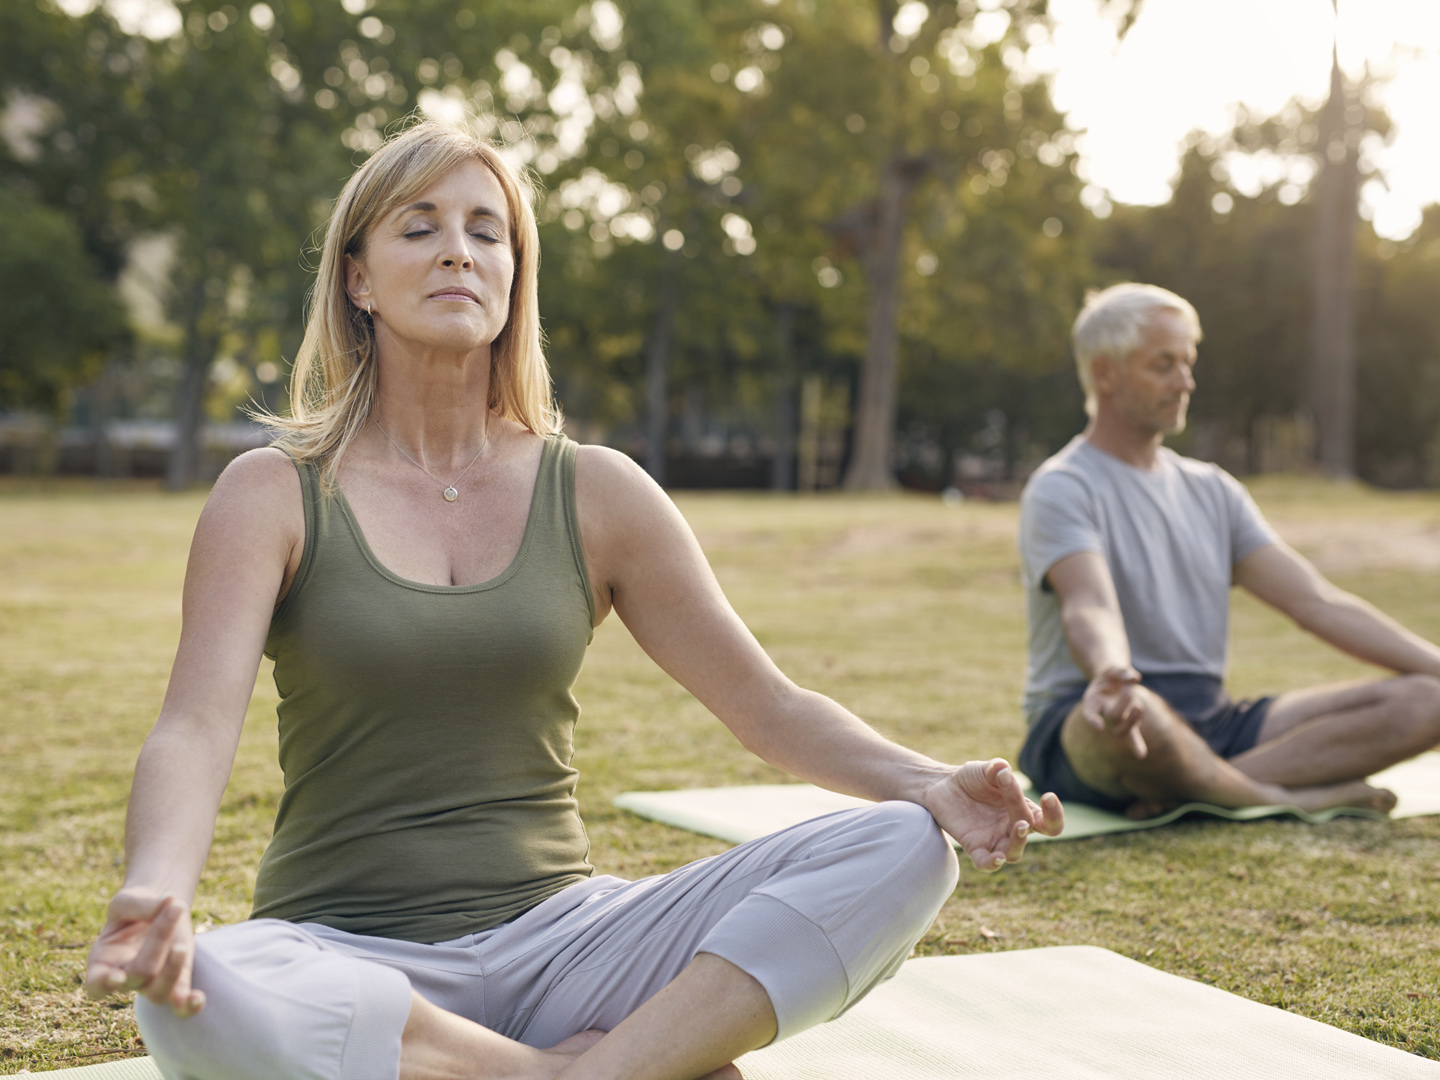 Yoga For Depression? Mental Health - Andrew Weil, M.D.